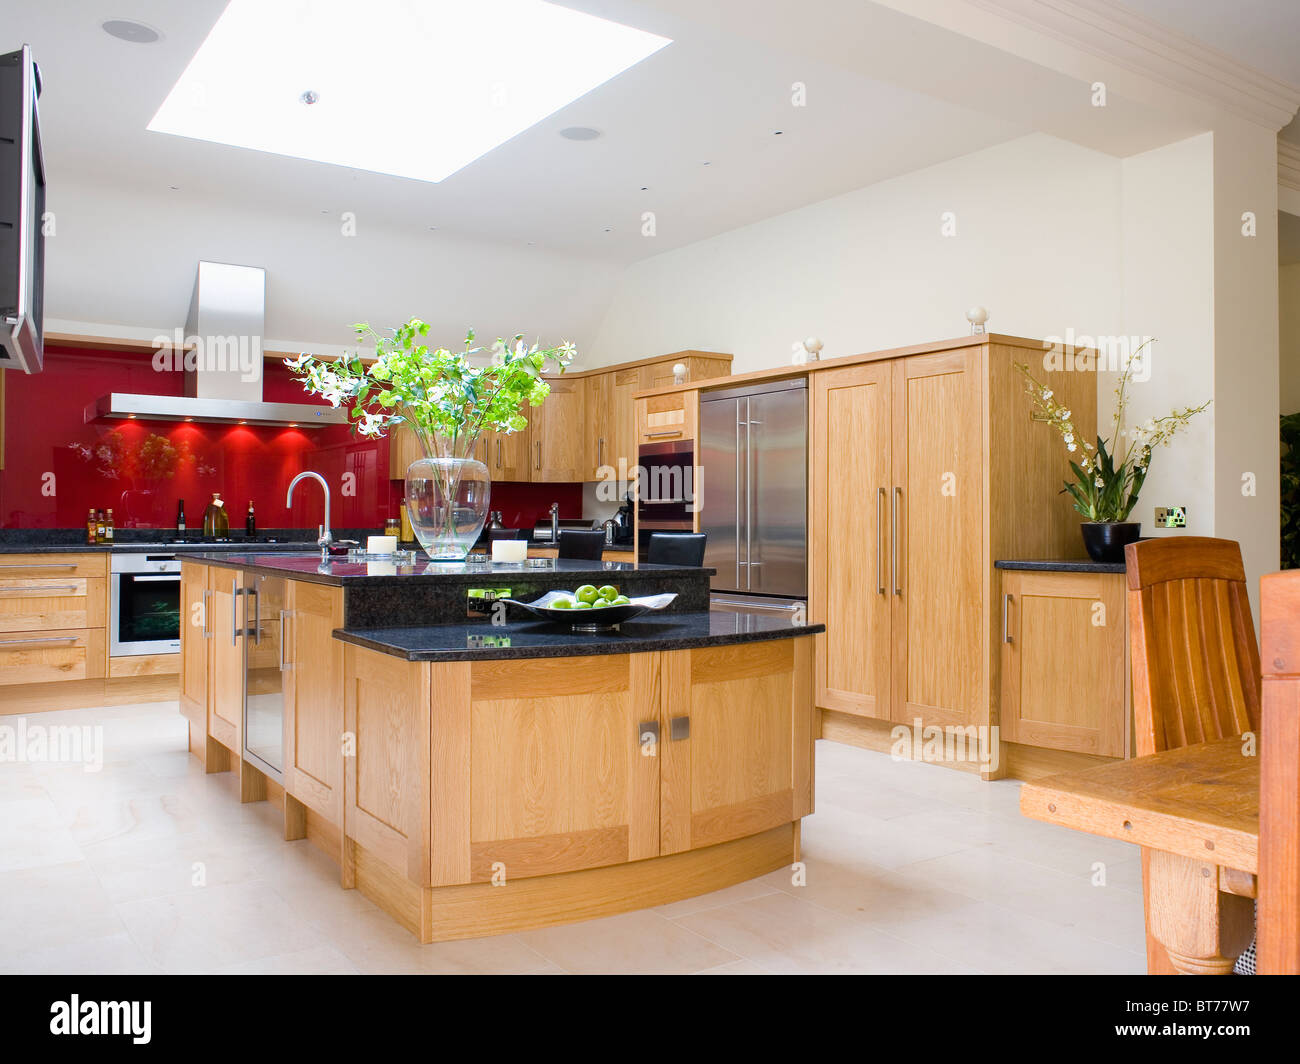 Kitchen Granite Worktop Pale Wood Island Unit With Black Granite Worktop In Large Modern